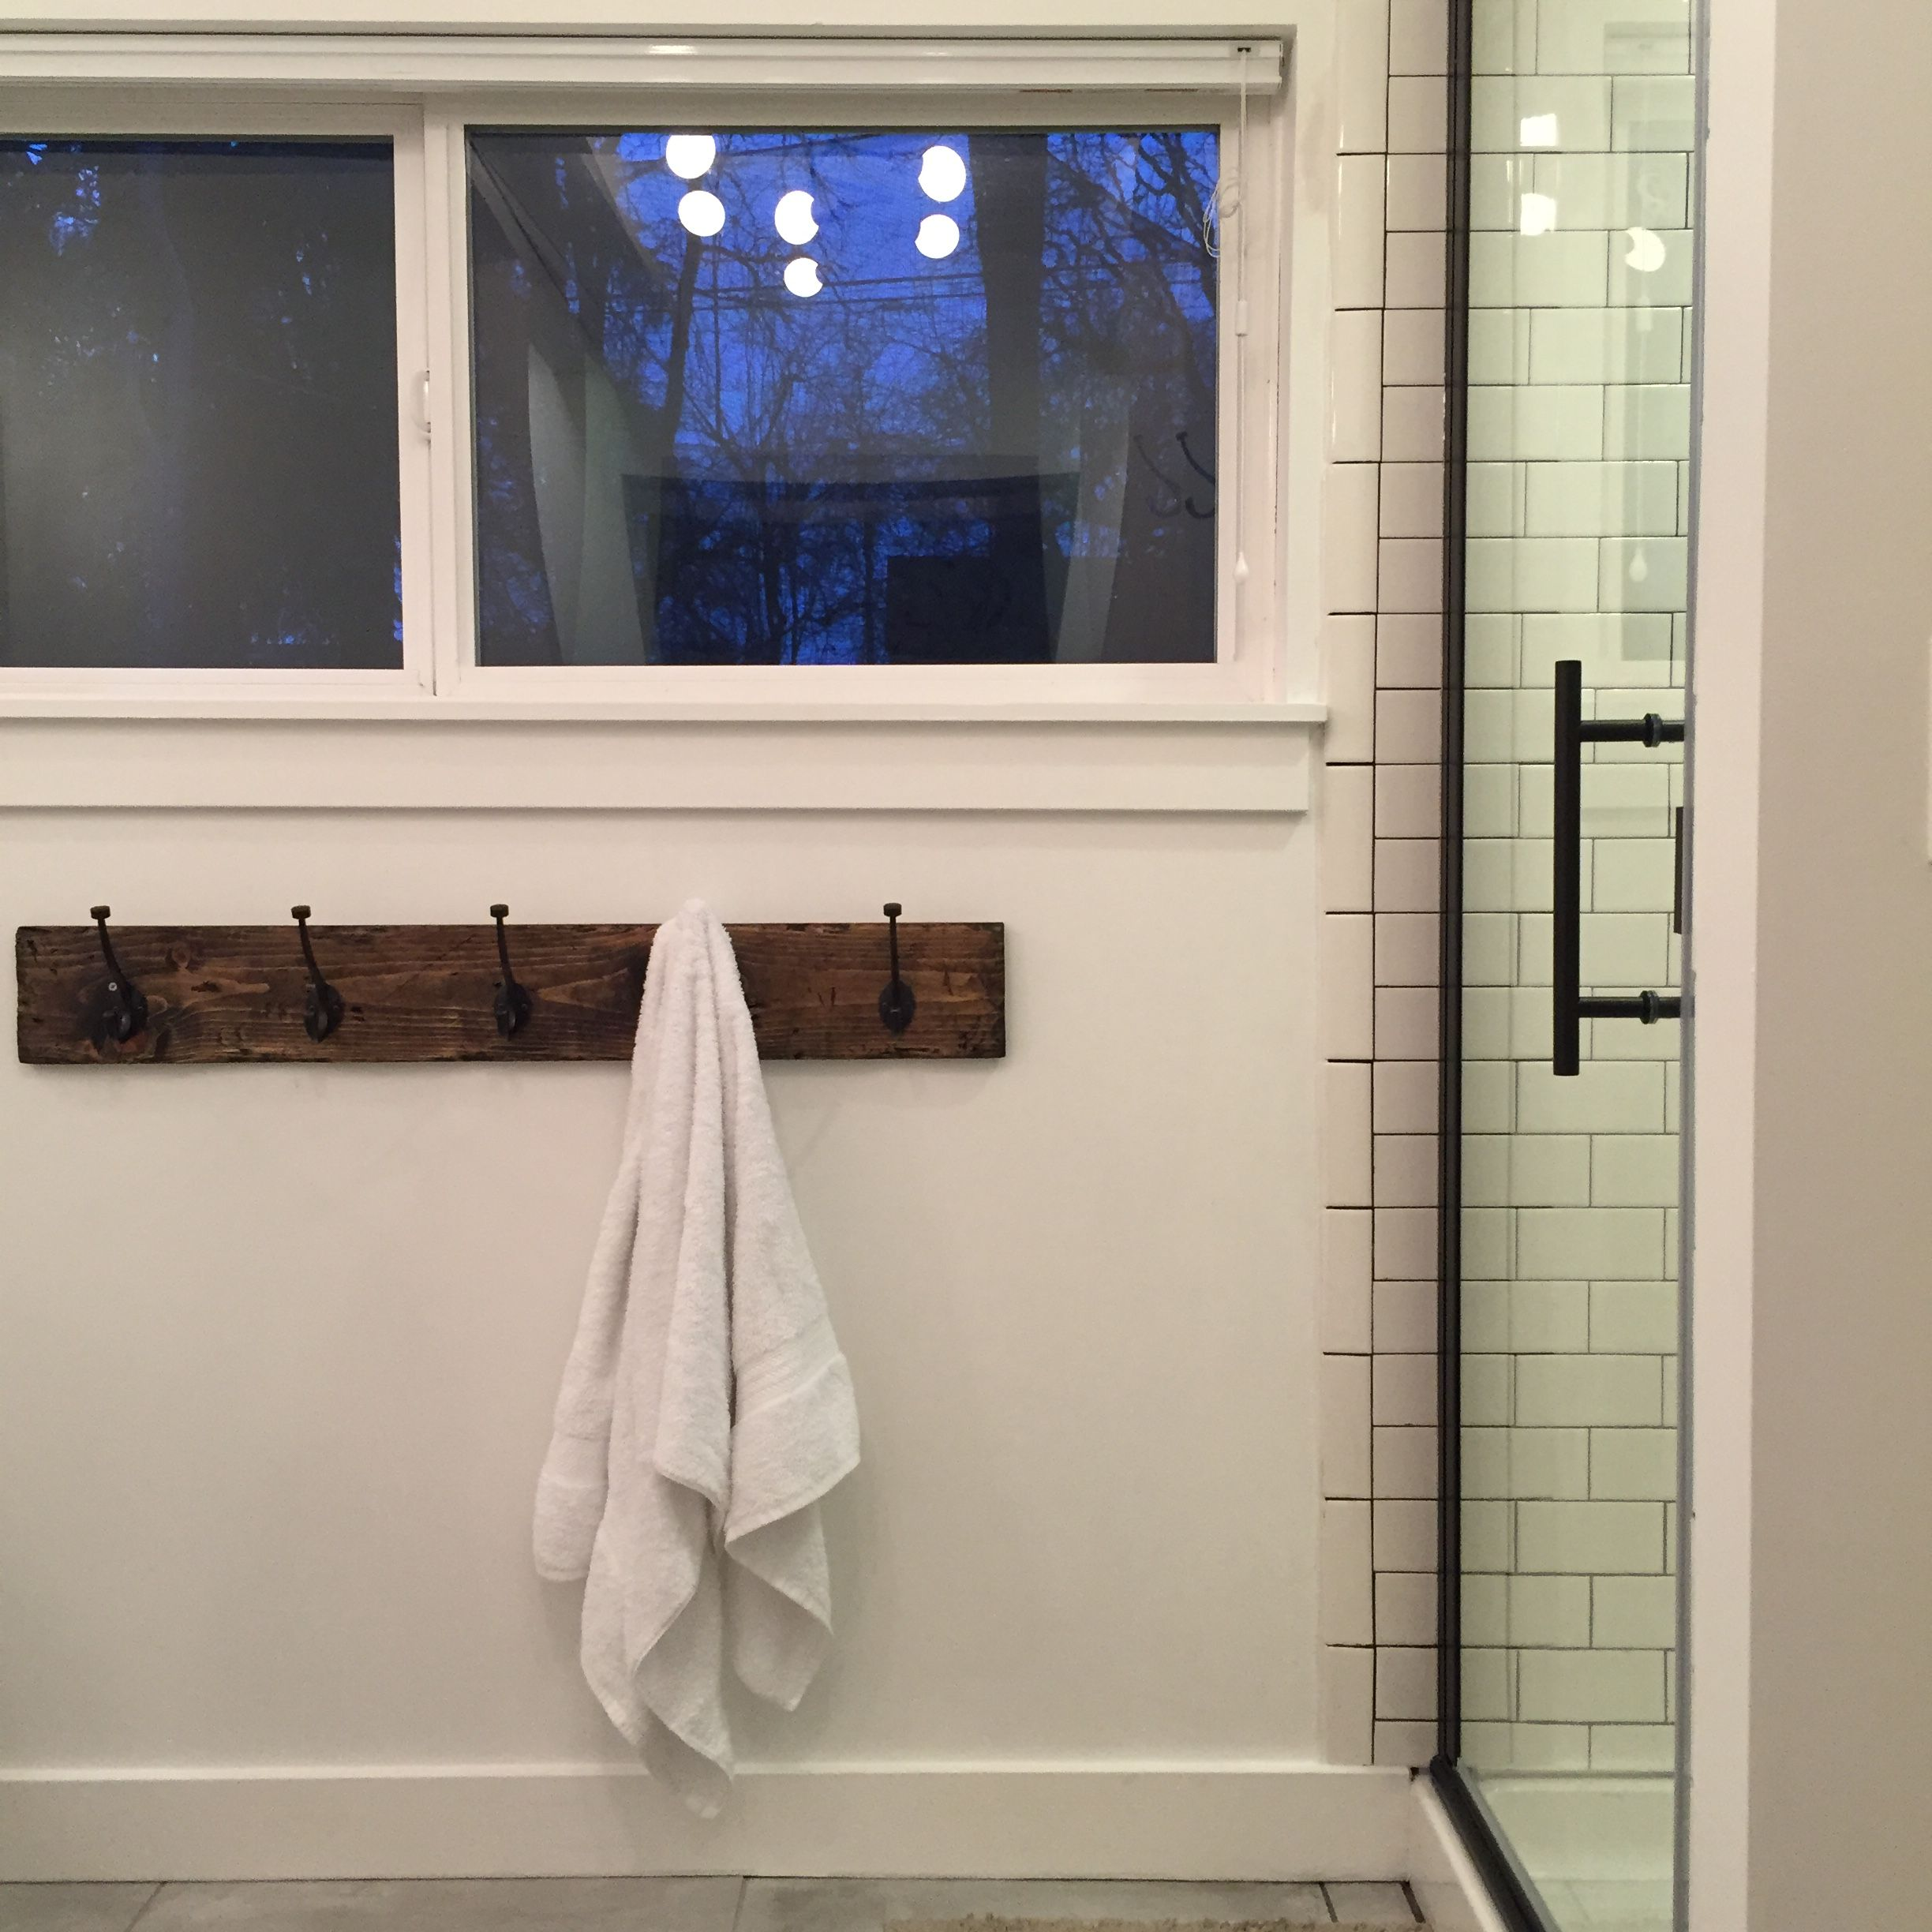 Reclaimed wood towel rack oil rubbed bronze shower door clean reclaimed wood towel rack oil rubbed bronze shower door clean white walls white dailygadgetfo Images